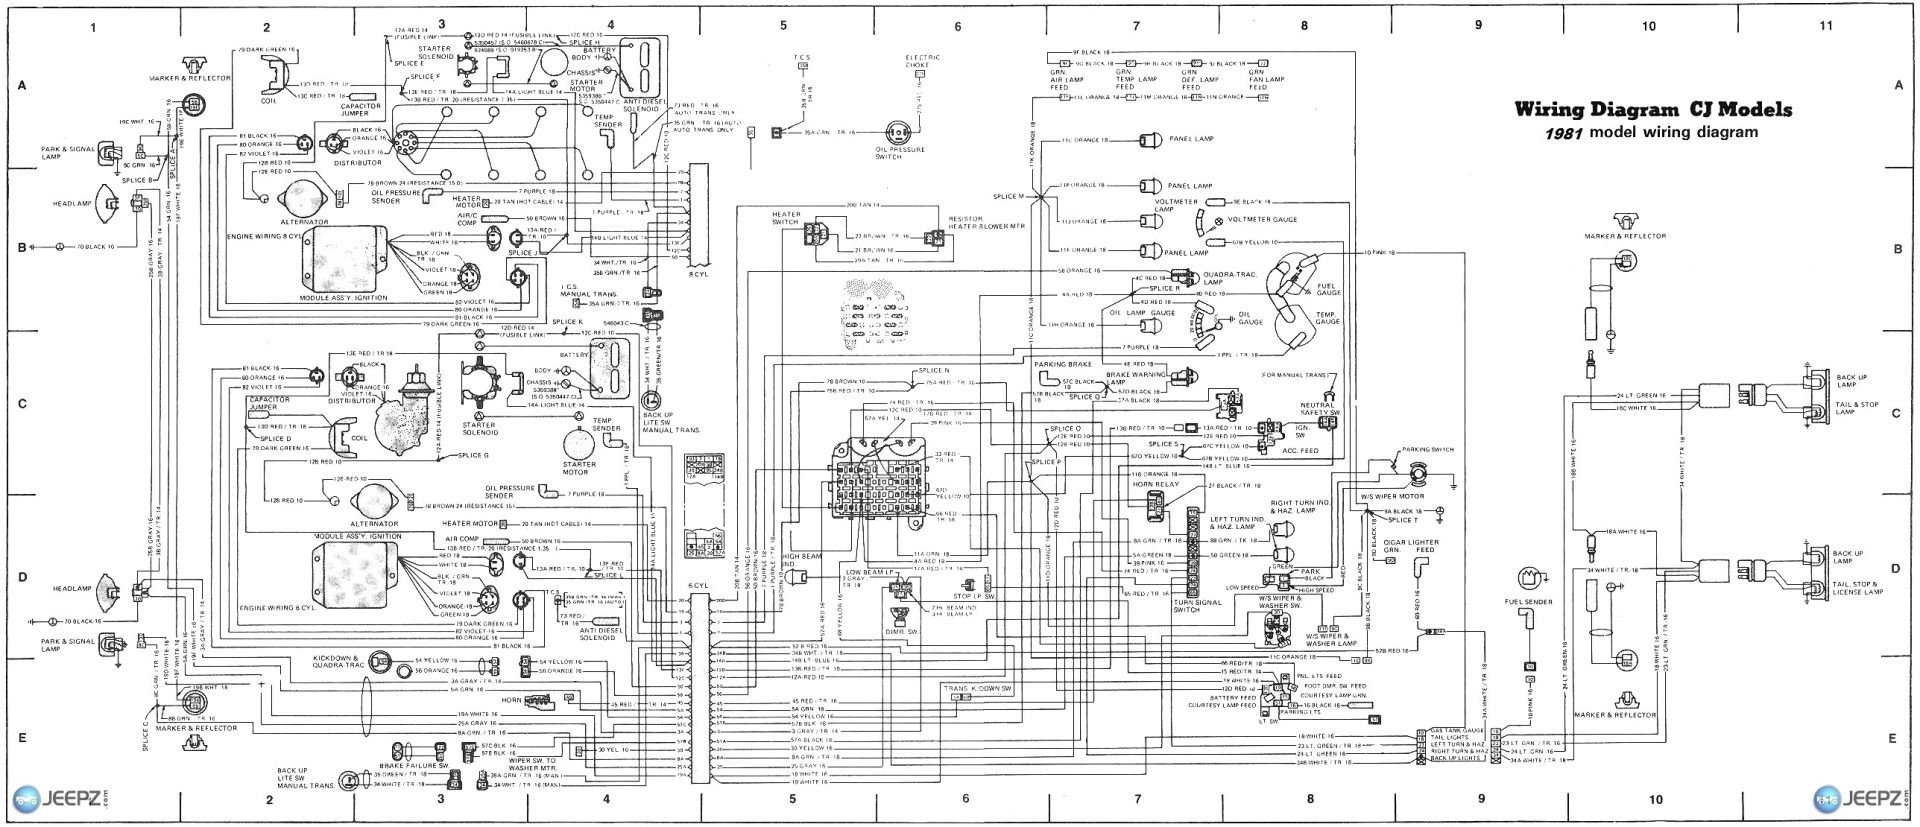 Clark Gcx 25e Wiring Diagram Detailed Diagrams Electronic Horn Schematic Electric Forklift List Of Circuit Image